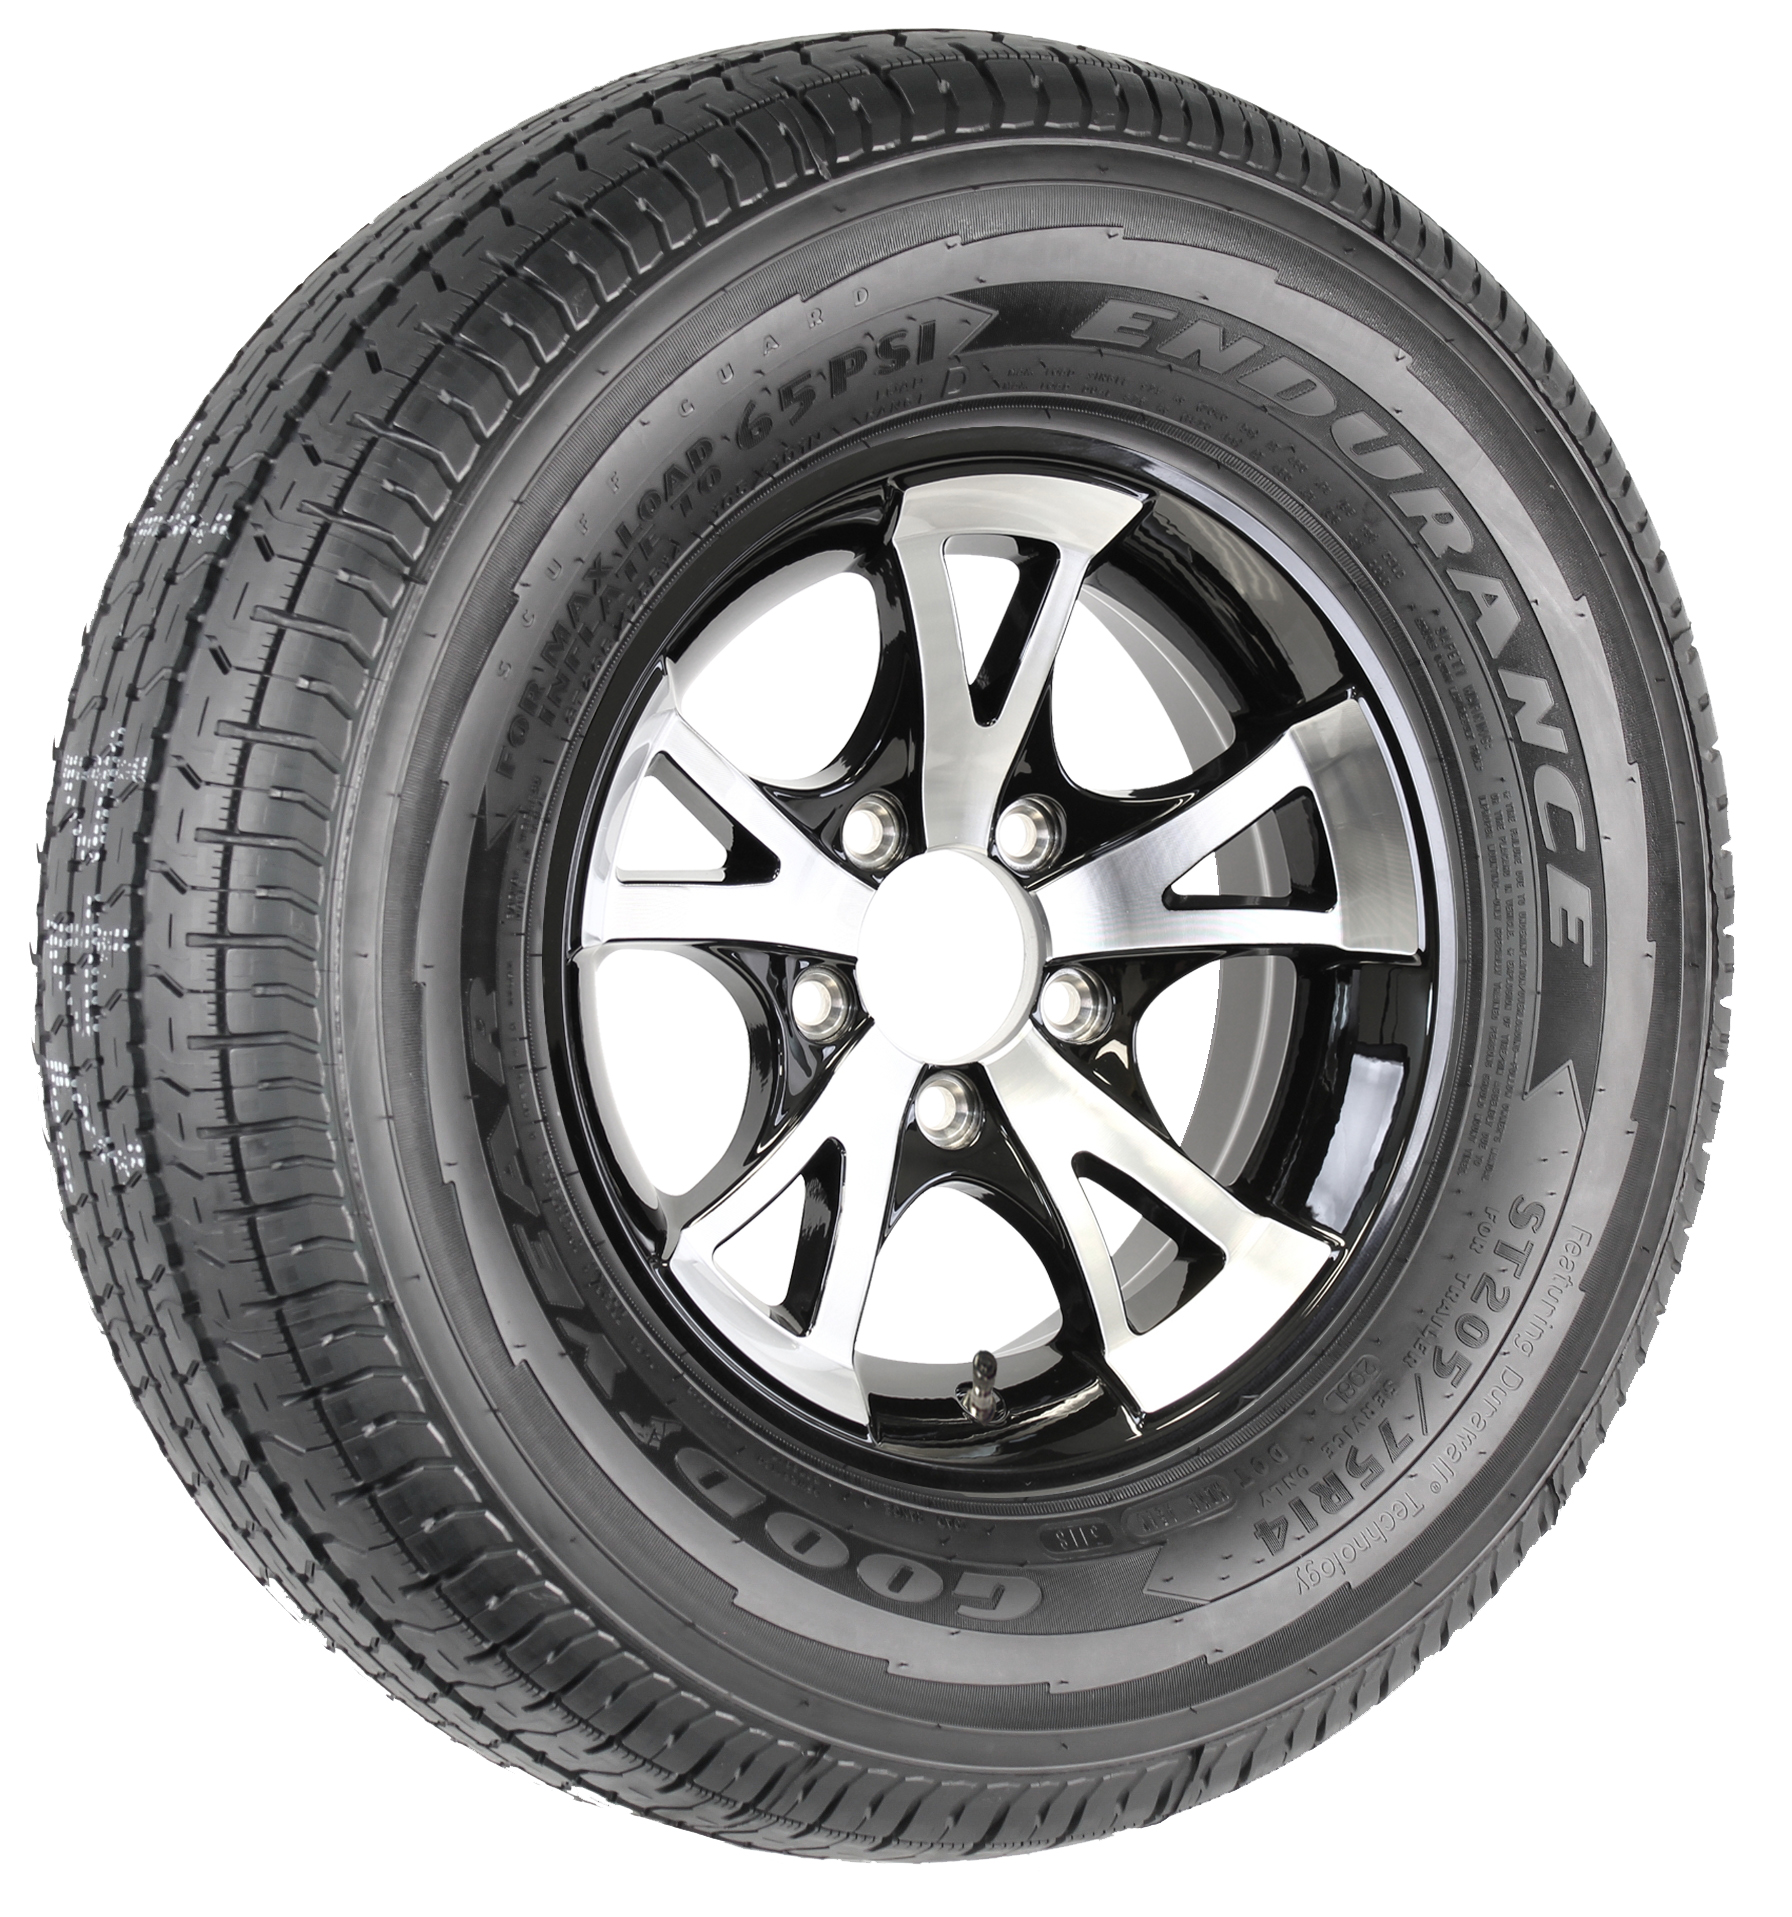 "Goodyear Endurance ST205/75R14 LRD Radial Tire on 14"" 5-Lug A1411 Black Aluminum Assembly Image"